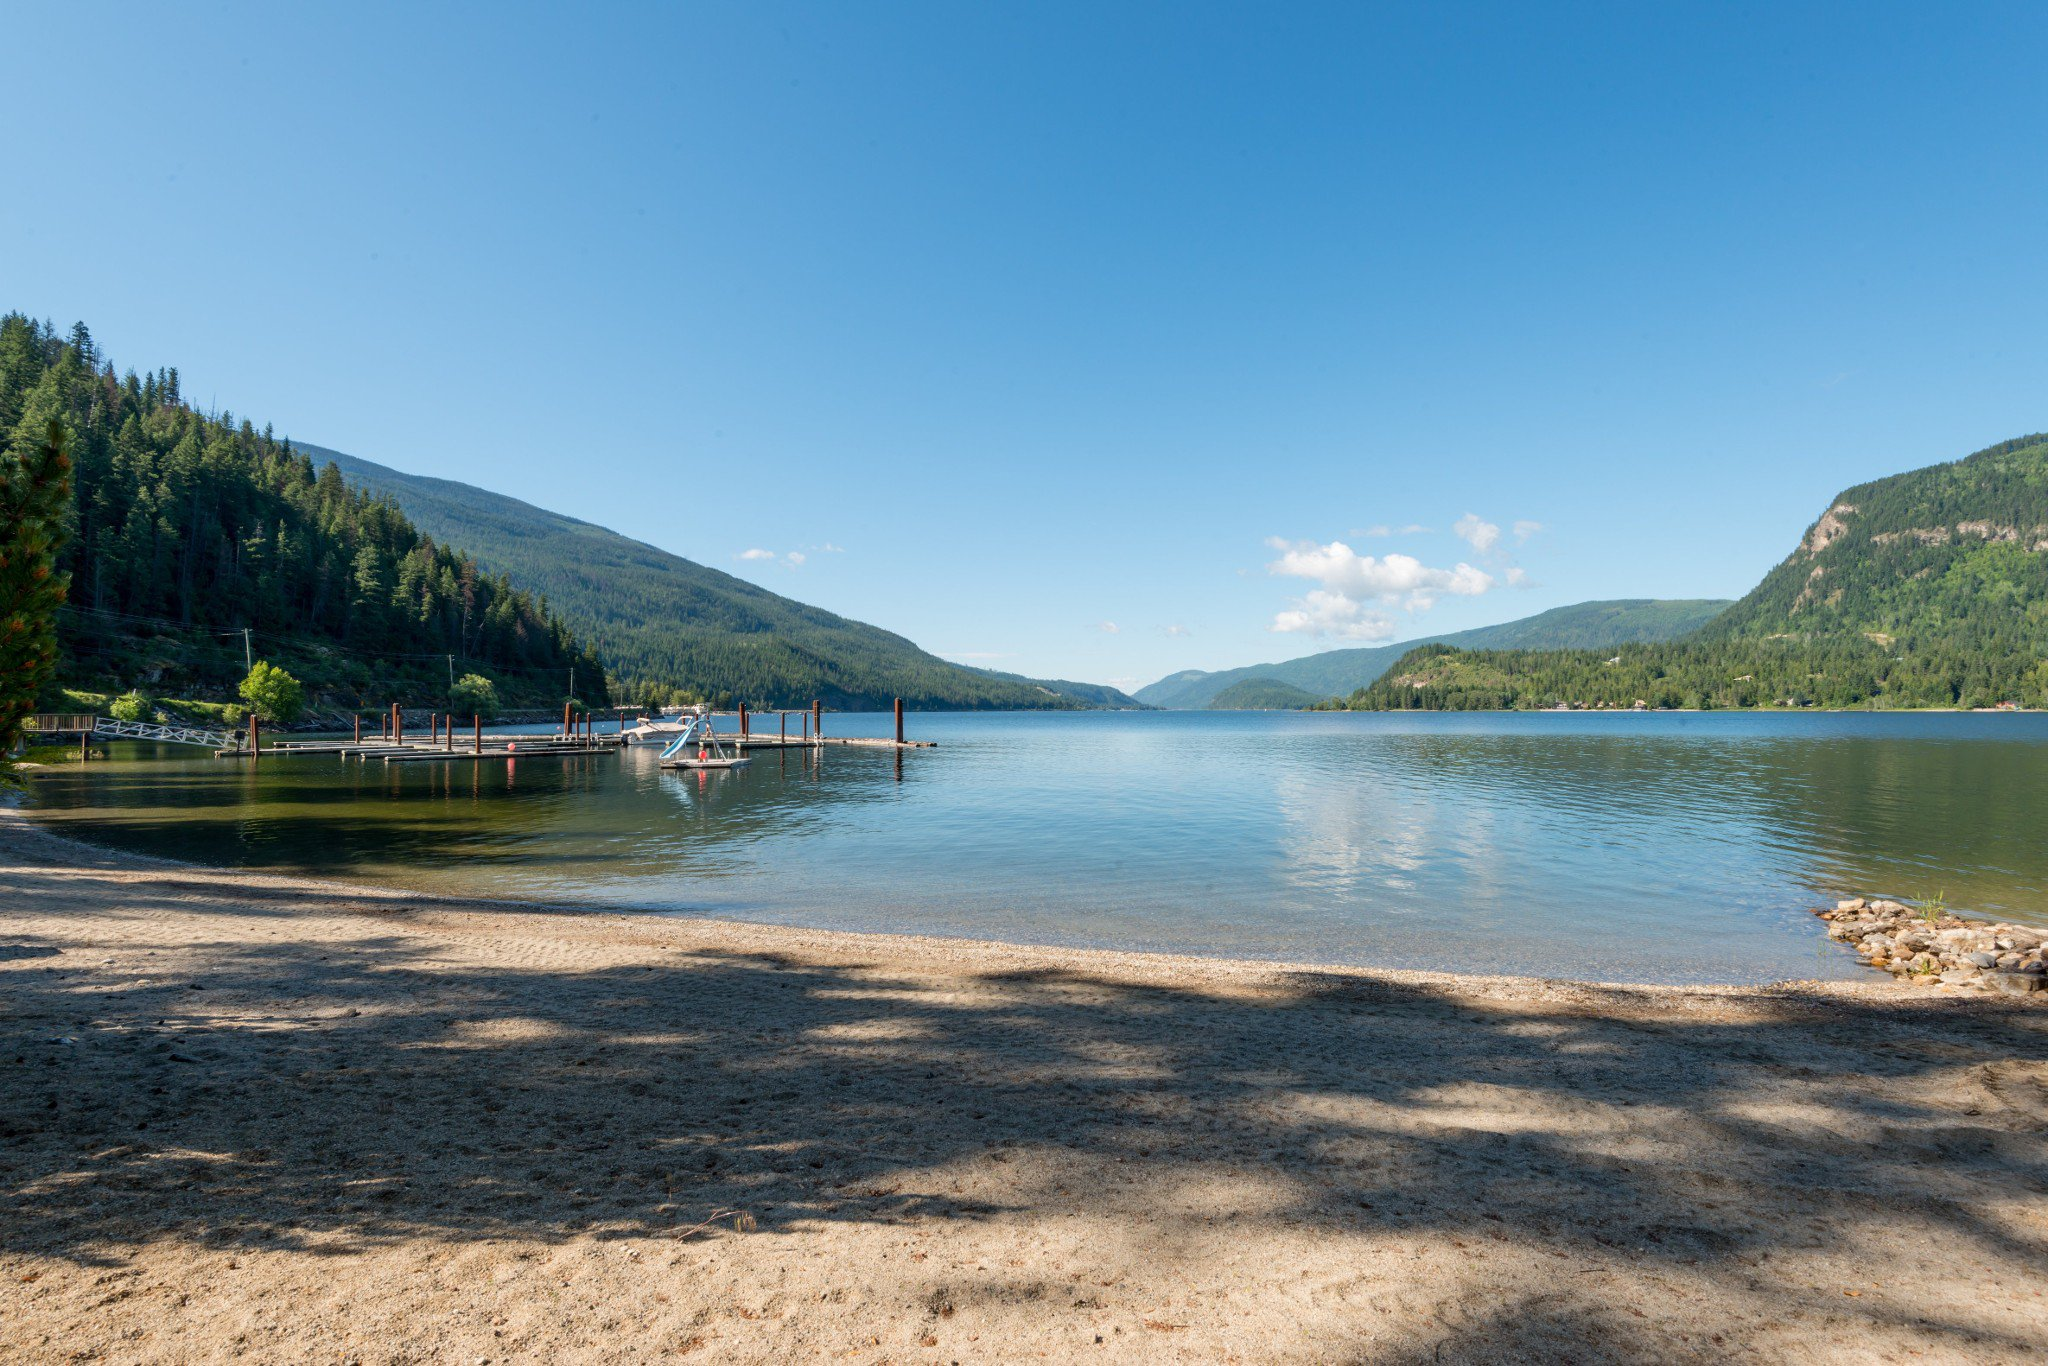 Main Photo: #5 202 97A Highway in : Sicamous Recreational for sale (SM)  : MLS®# 10185746